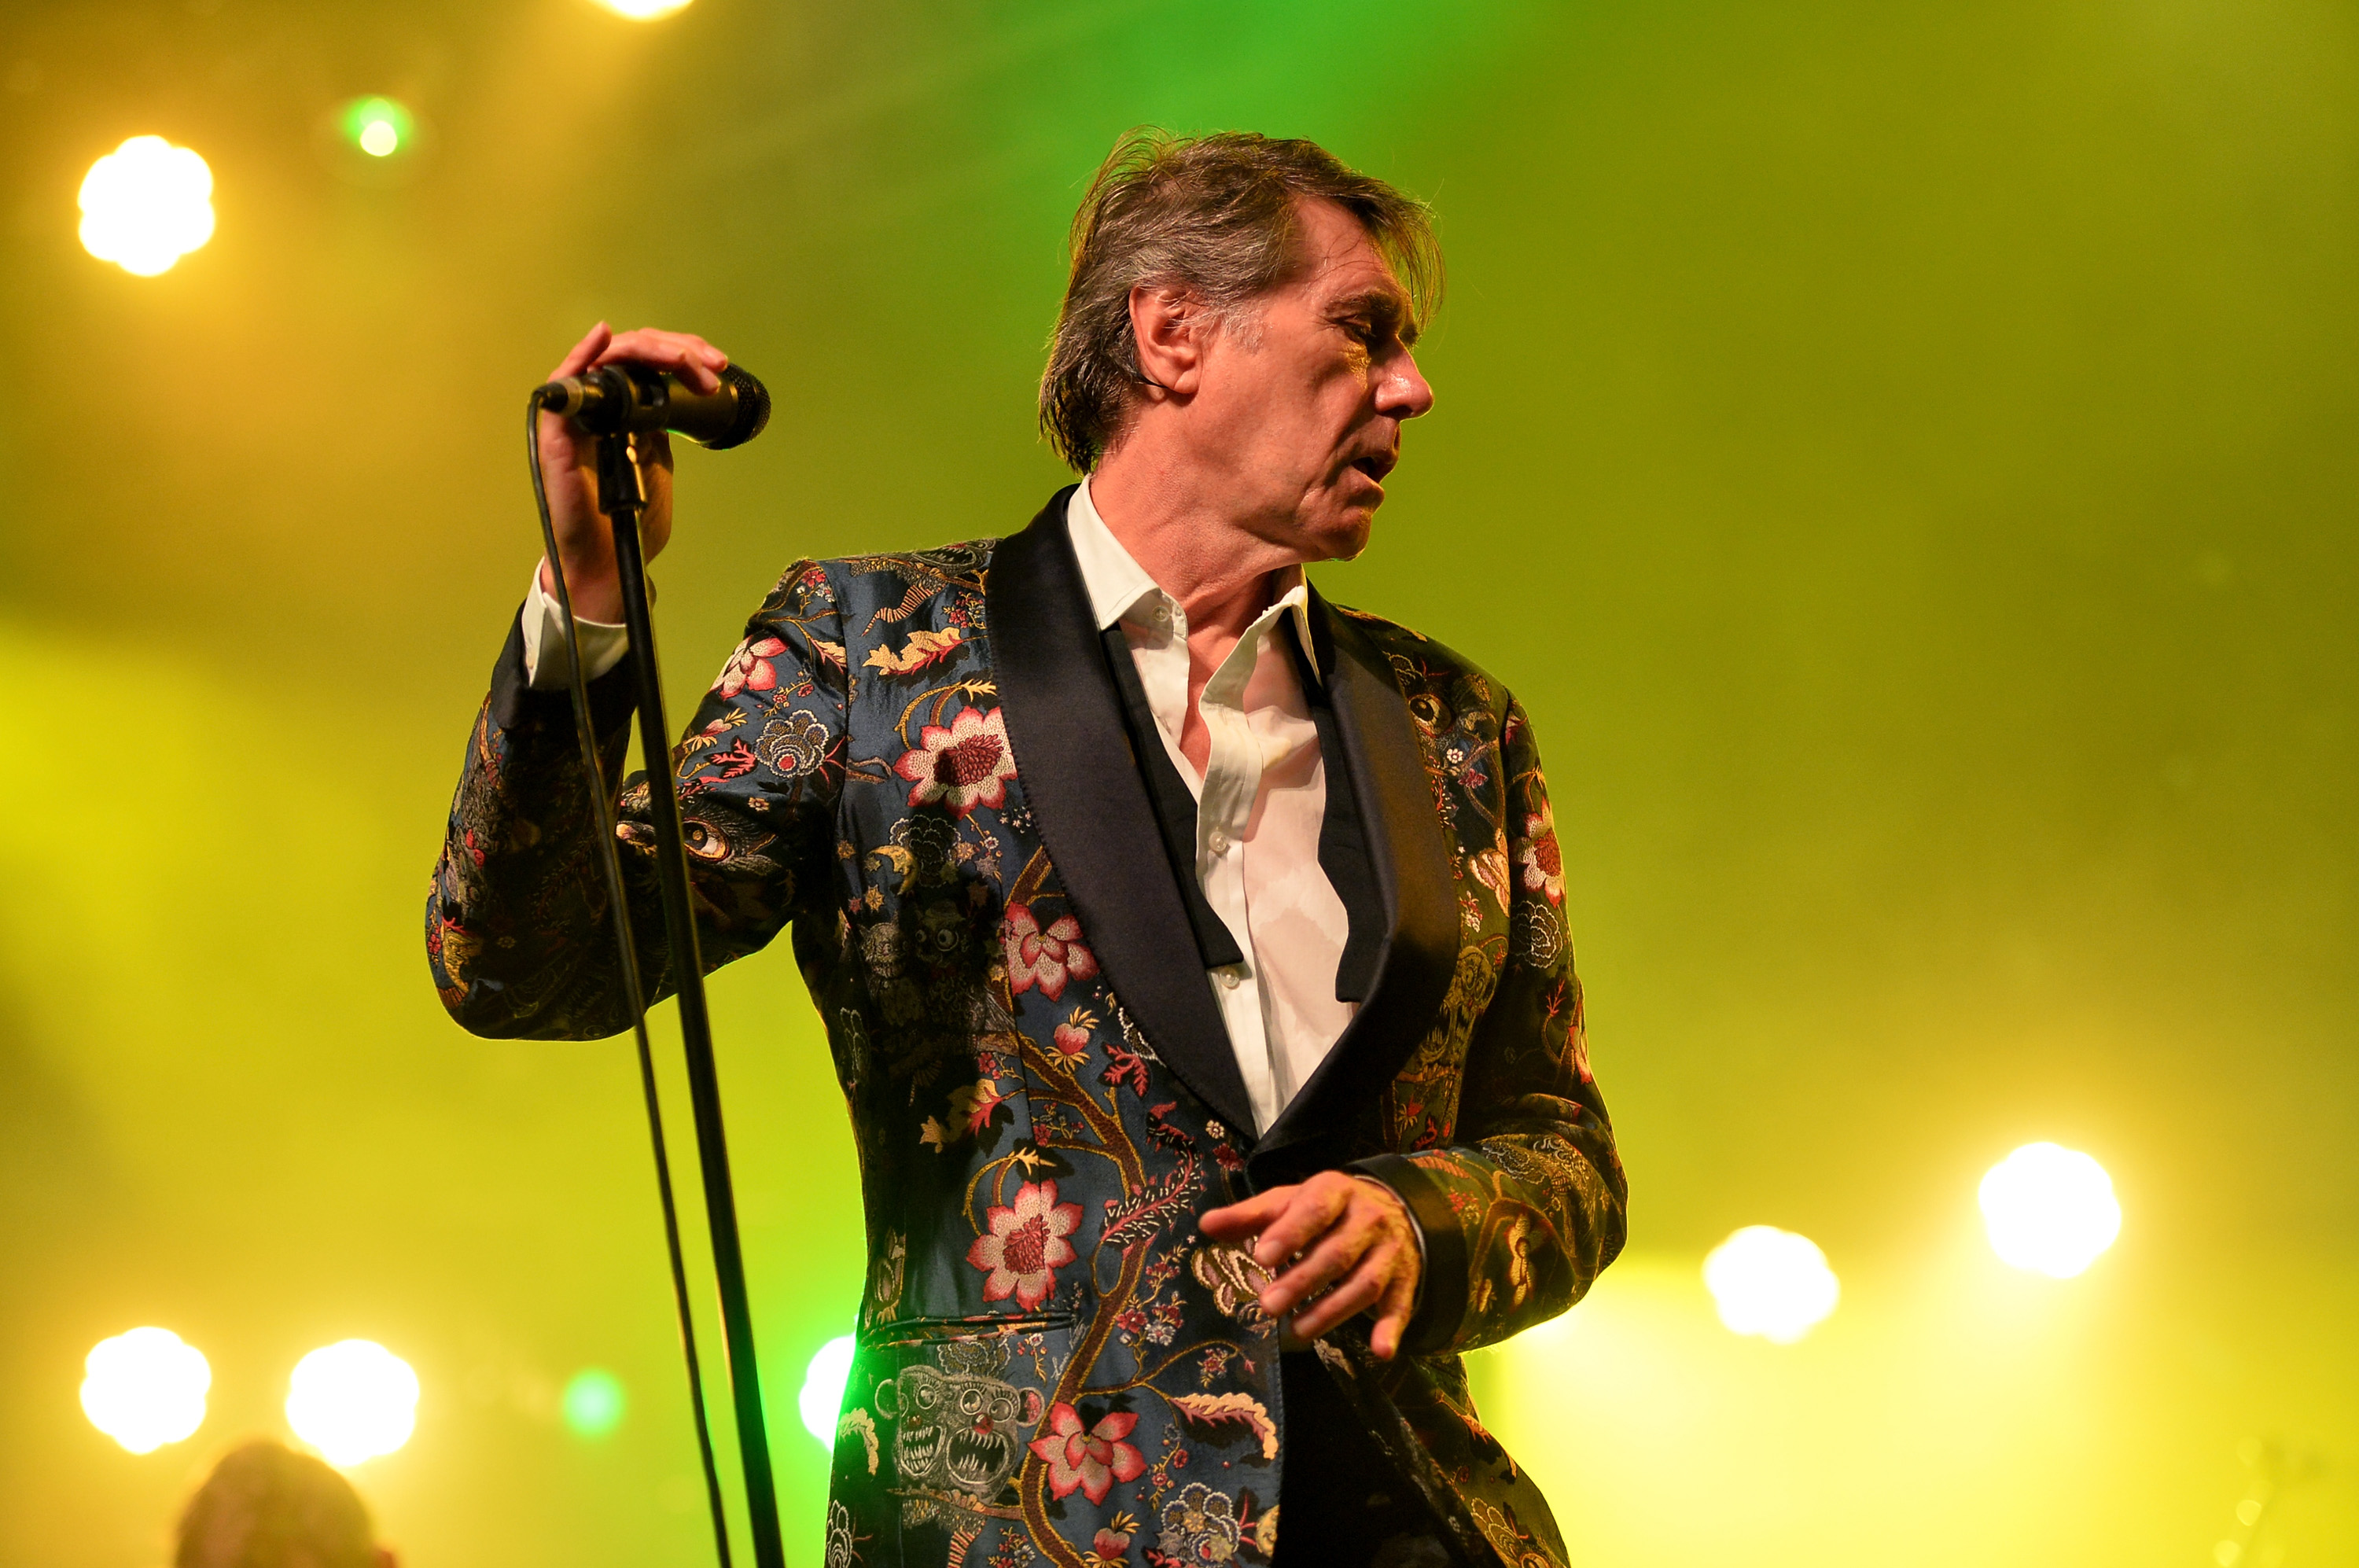 INDIO, CA - APRIL 18:  Singer Bryan Ferry performs onstage during day 1 of the 2014 Coachella Valley Music & Arts Festiva